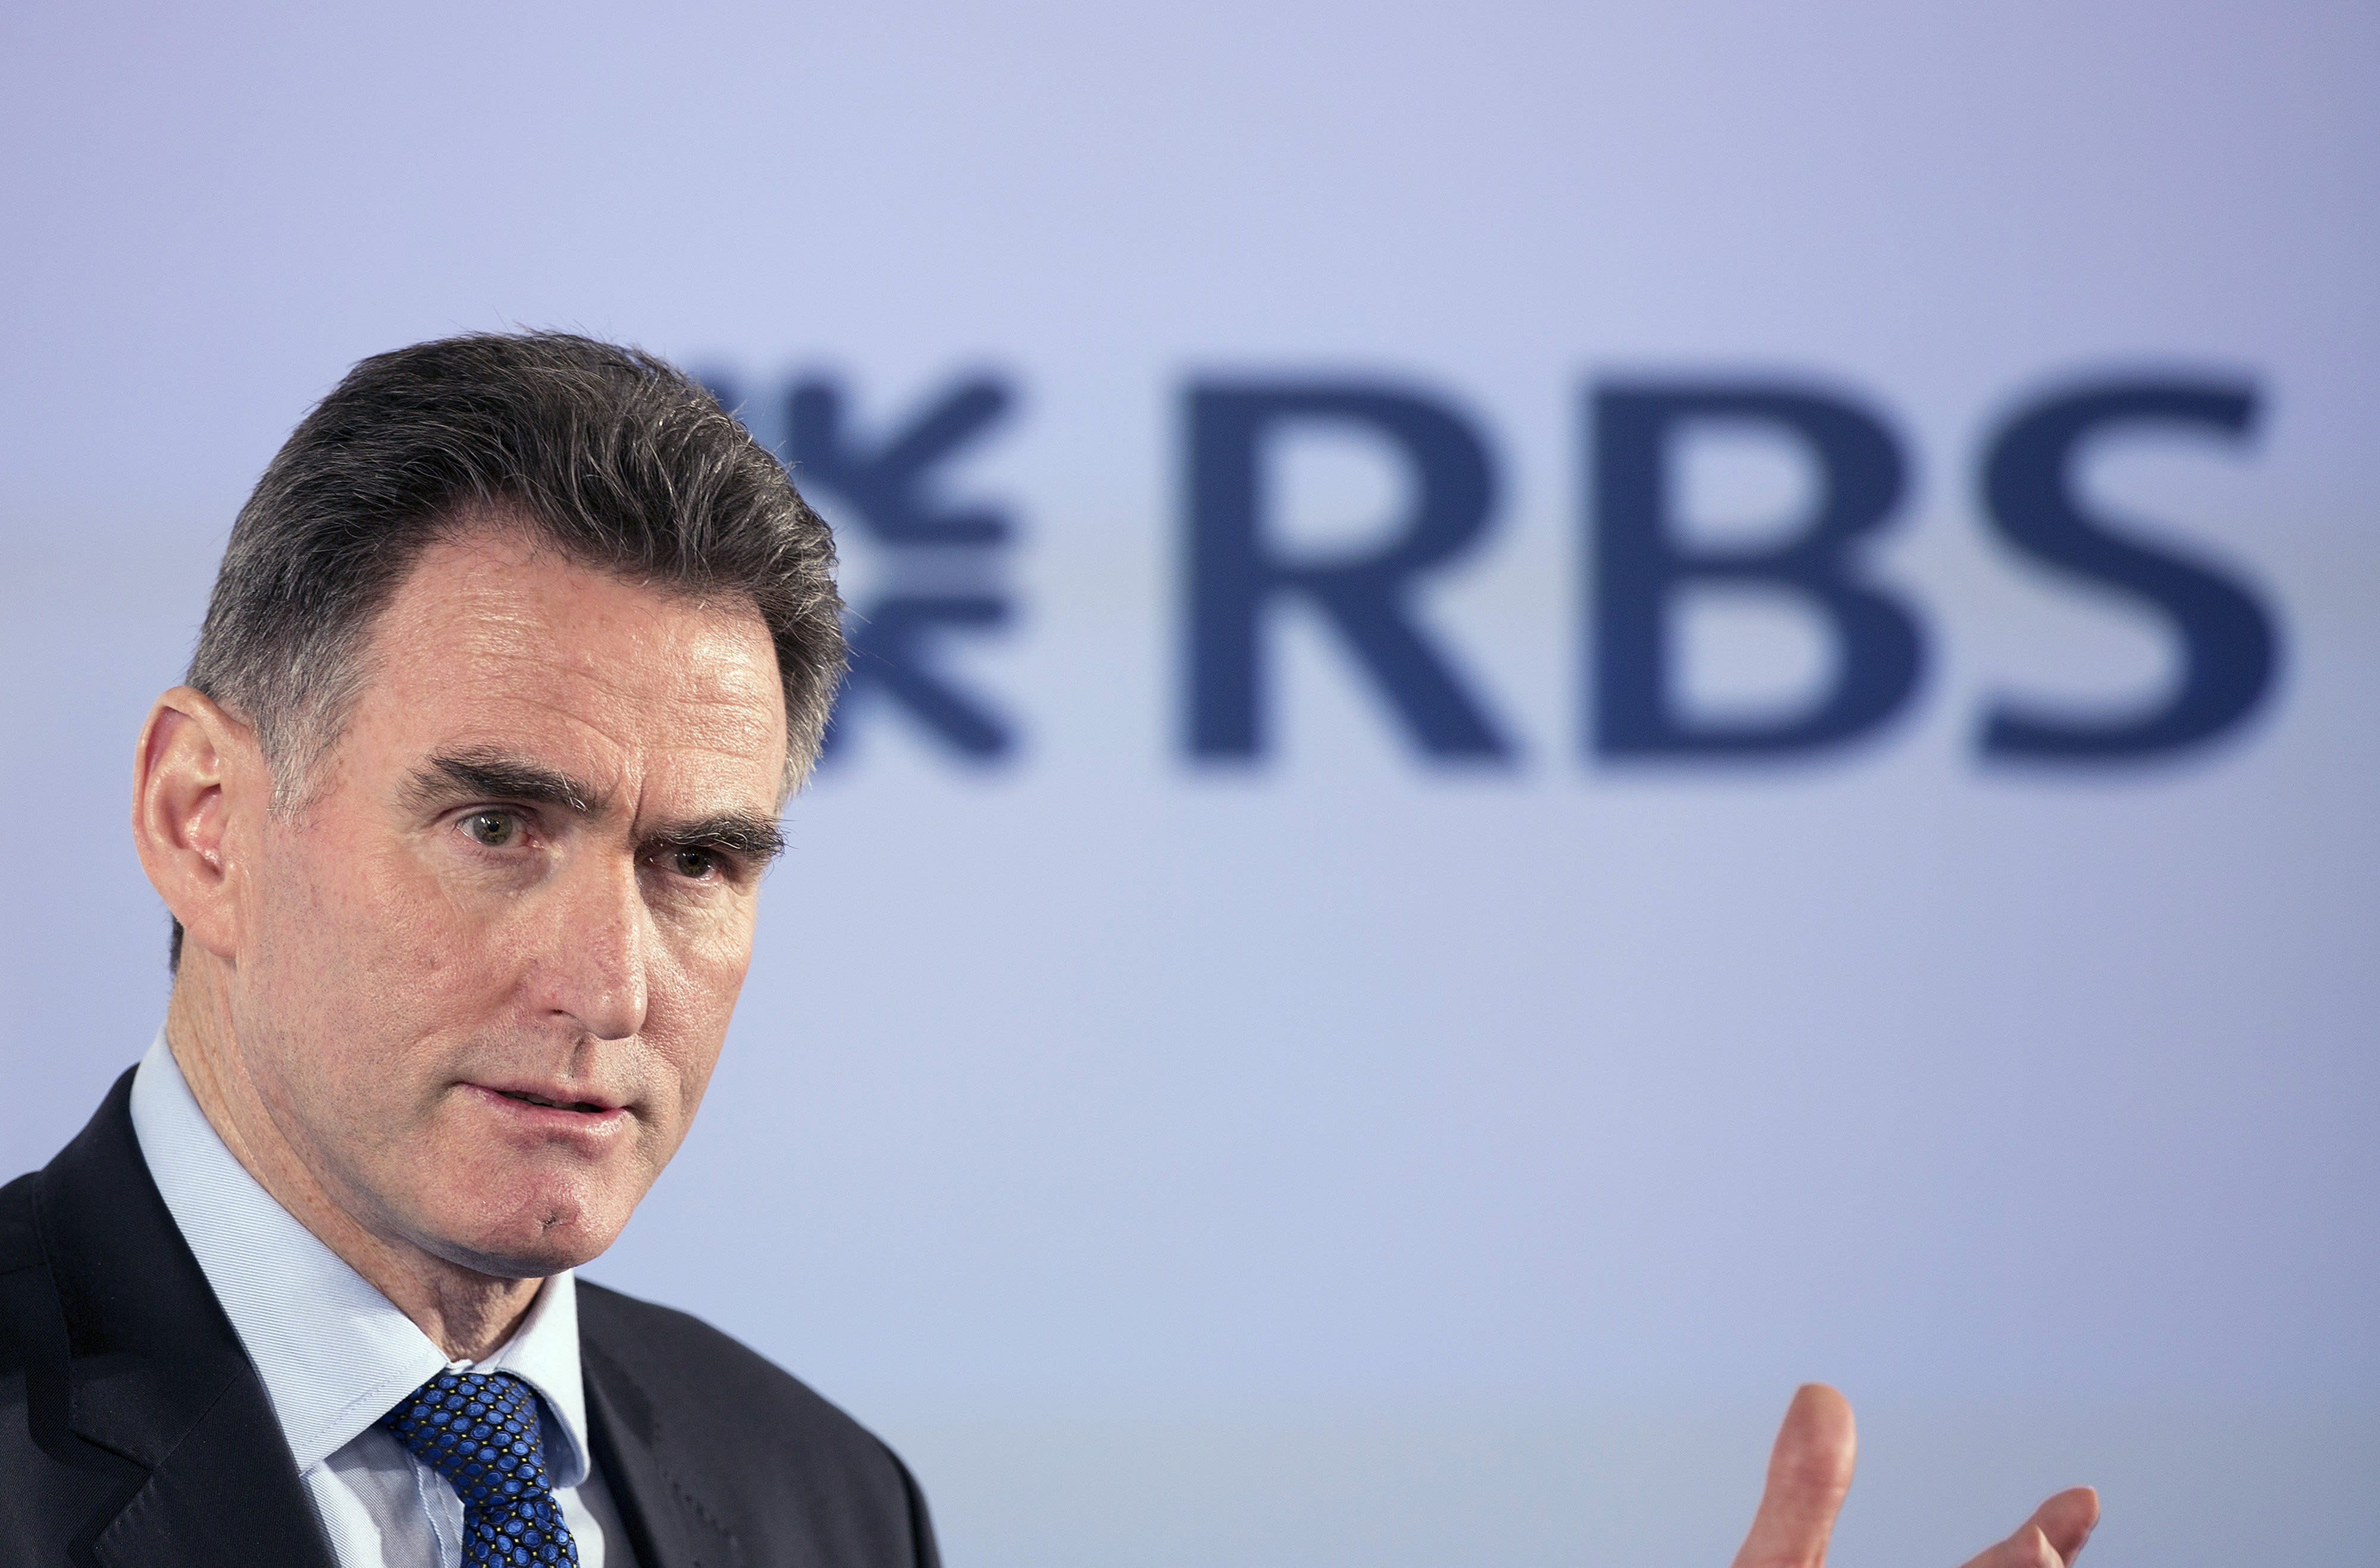 McEwan to leave RBS within 12 months